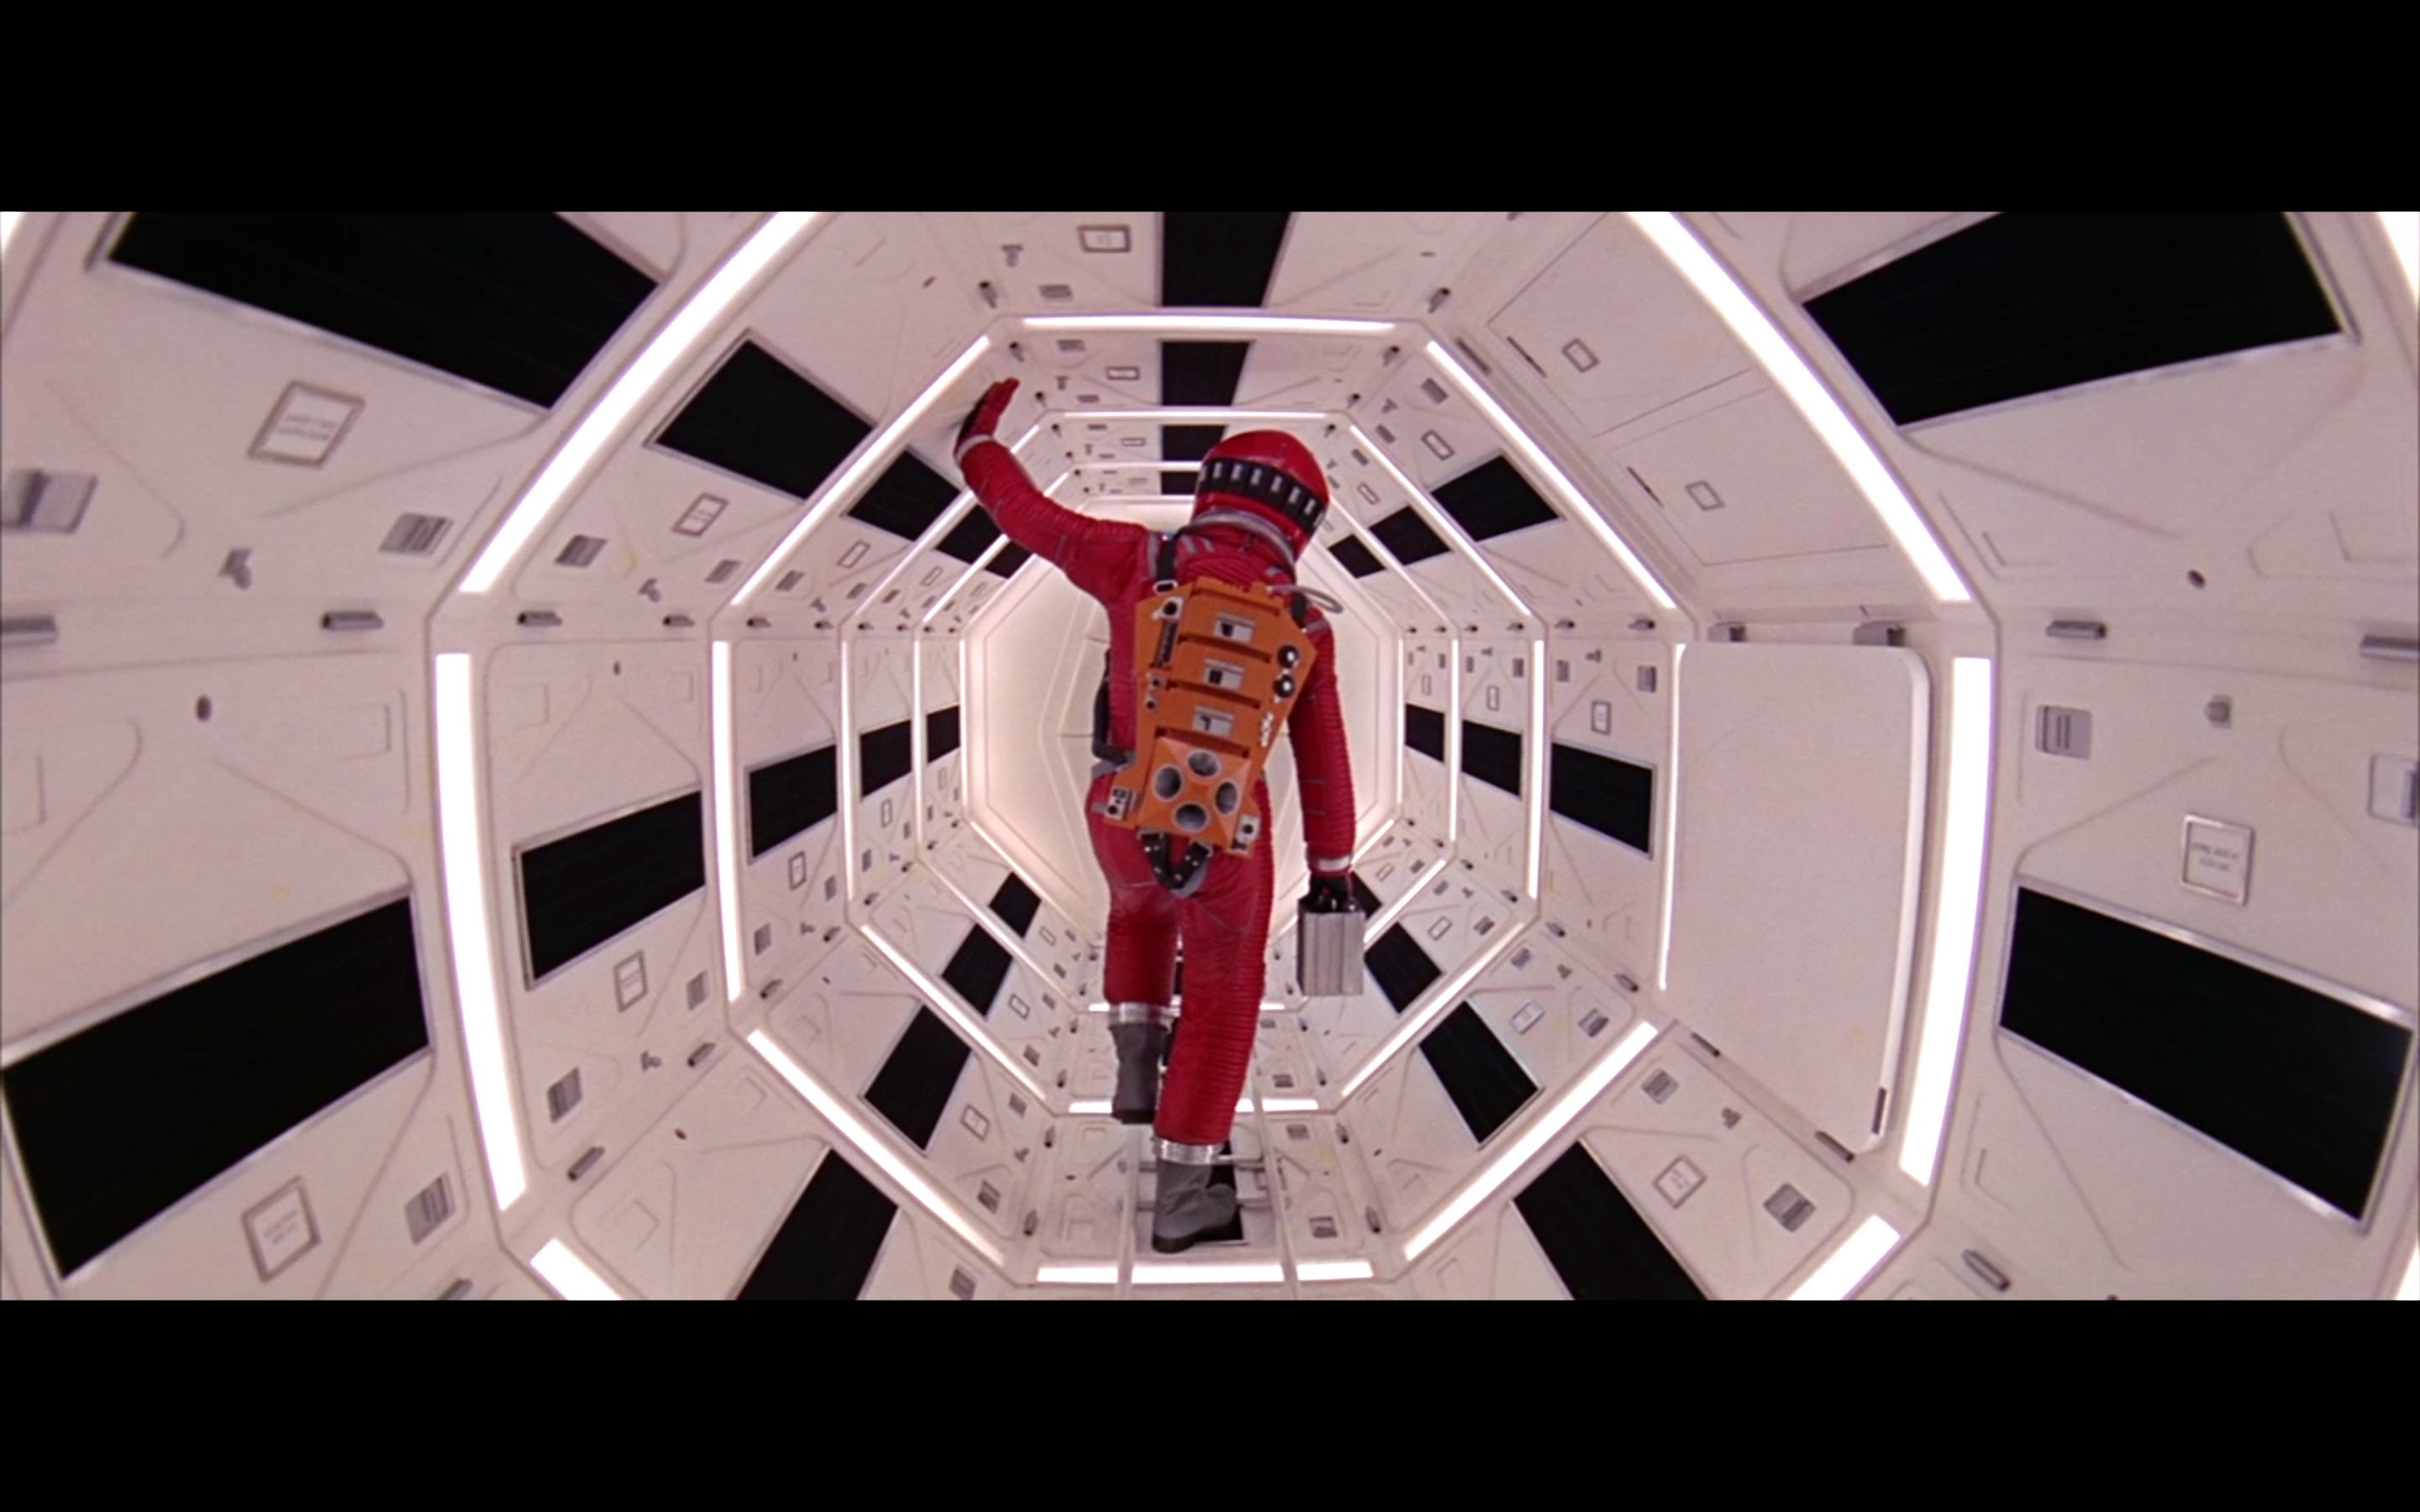 Gavaris 2001 A Space Odyssey To Return In 70mm The Heights